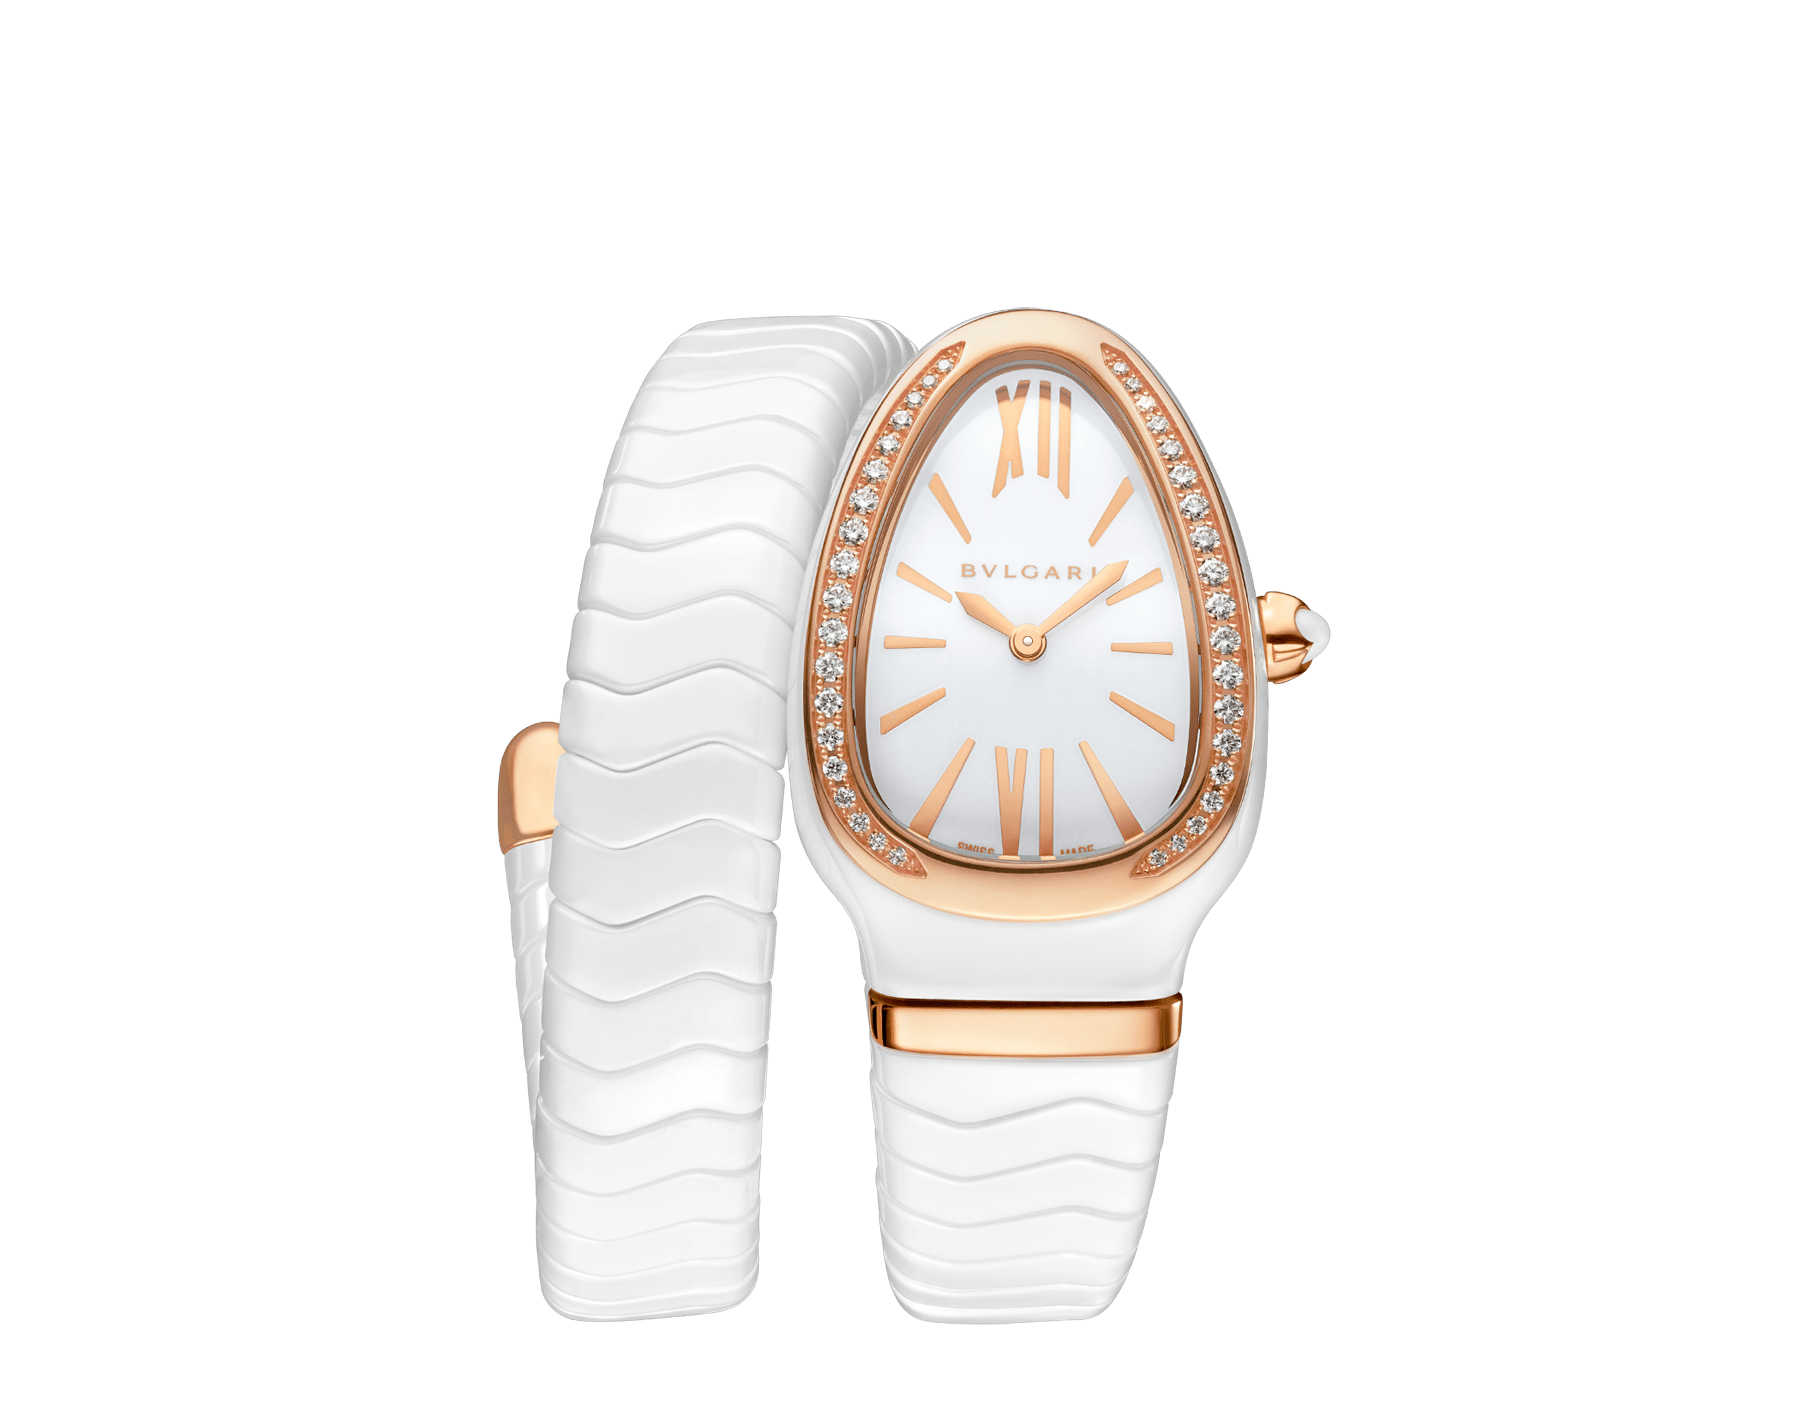 Serpenti Spiga single spiral watch with white ceramic case, 18 kt rose gold bezel set with brilliant cut diamonds, white lacquered dial, white ceramic bracelet with 18 kt rose gold elements. 102613 image 1